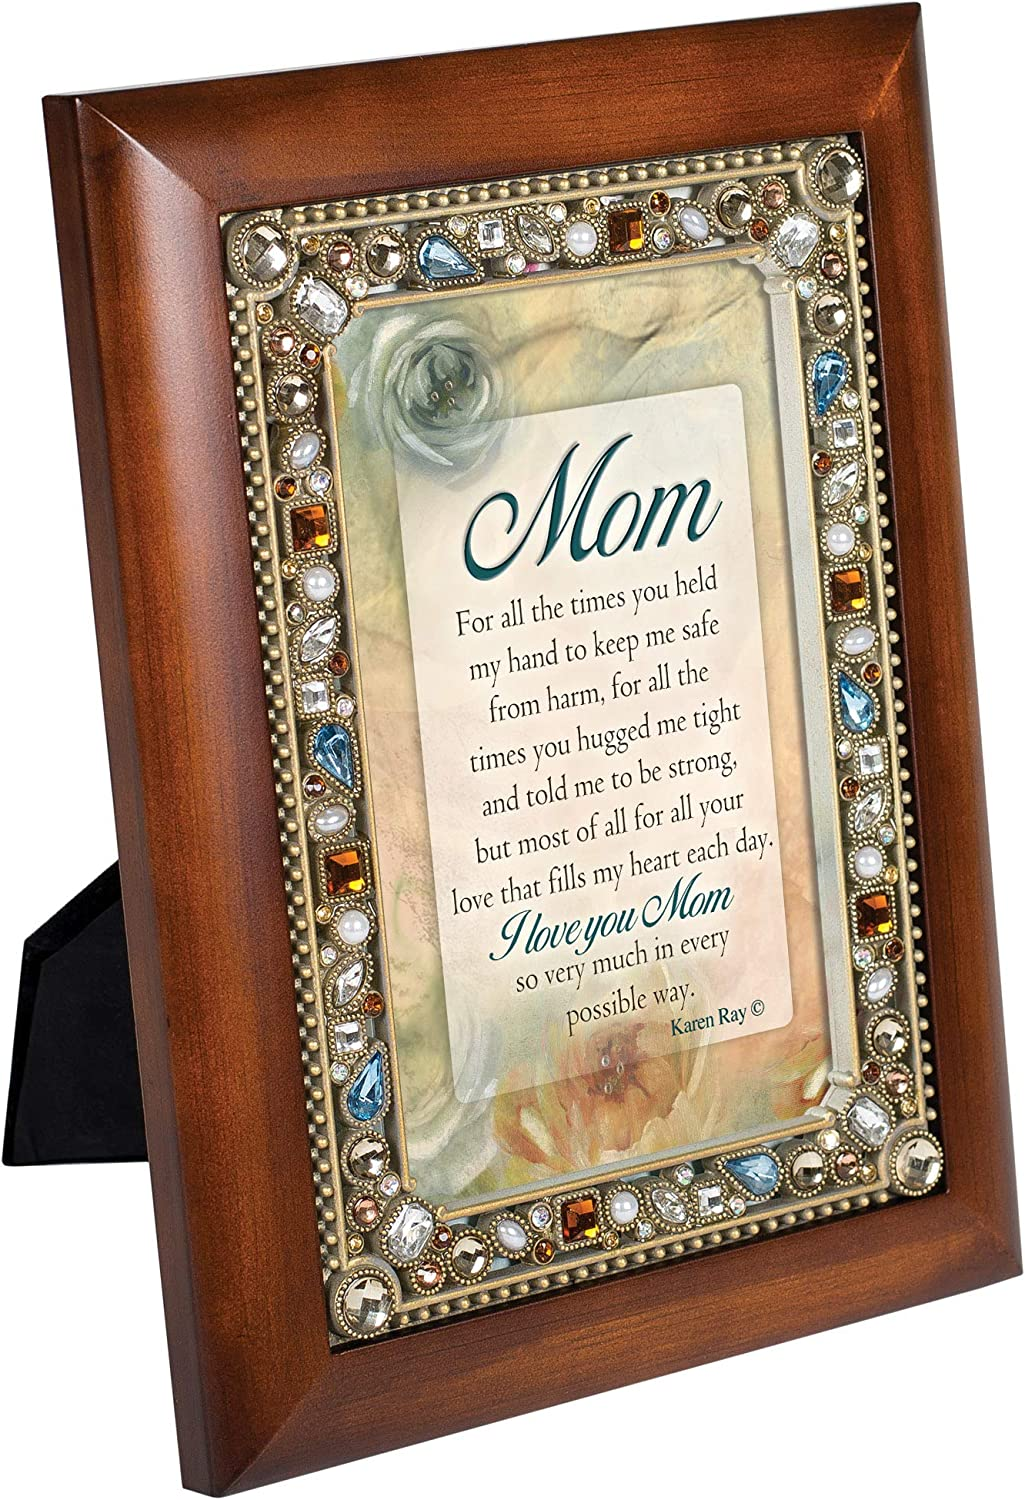 Cottage Garden for All The Times You Held My Hand Woodgrain Easel Back Photo Frame